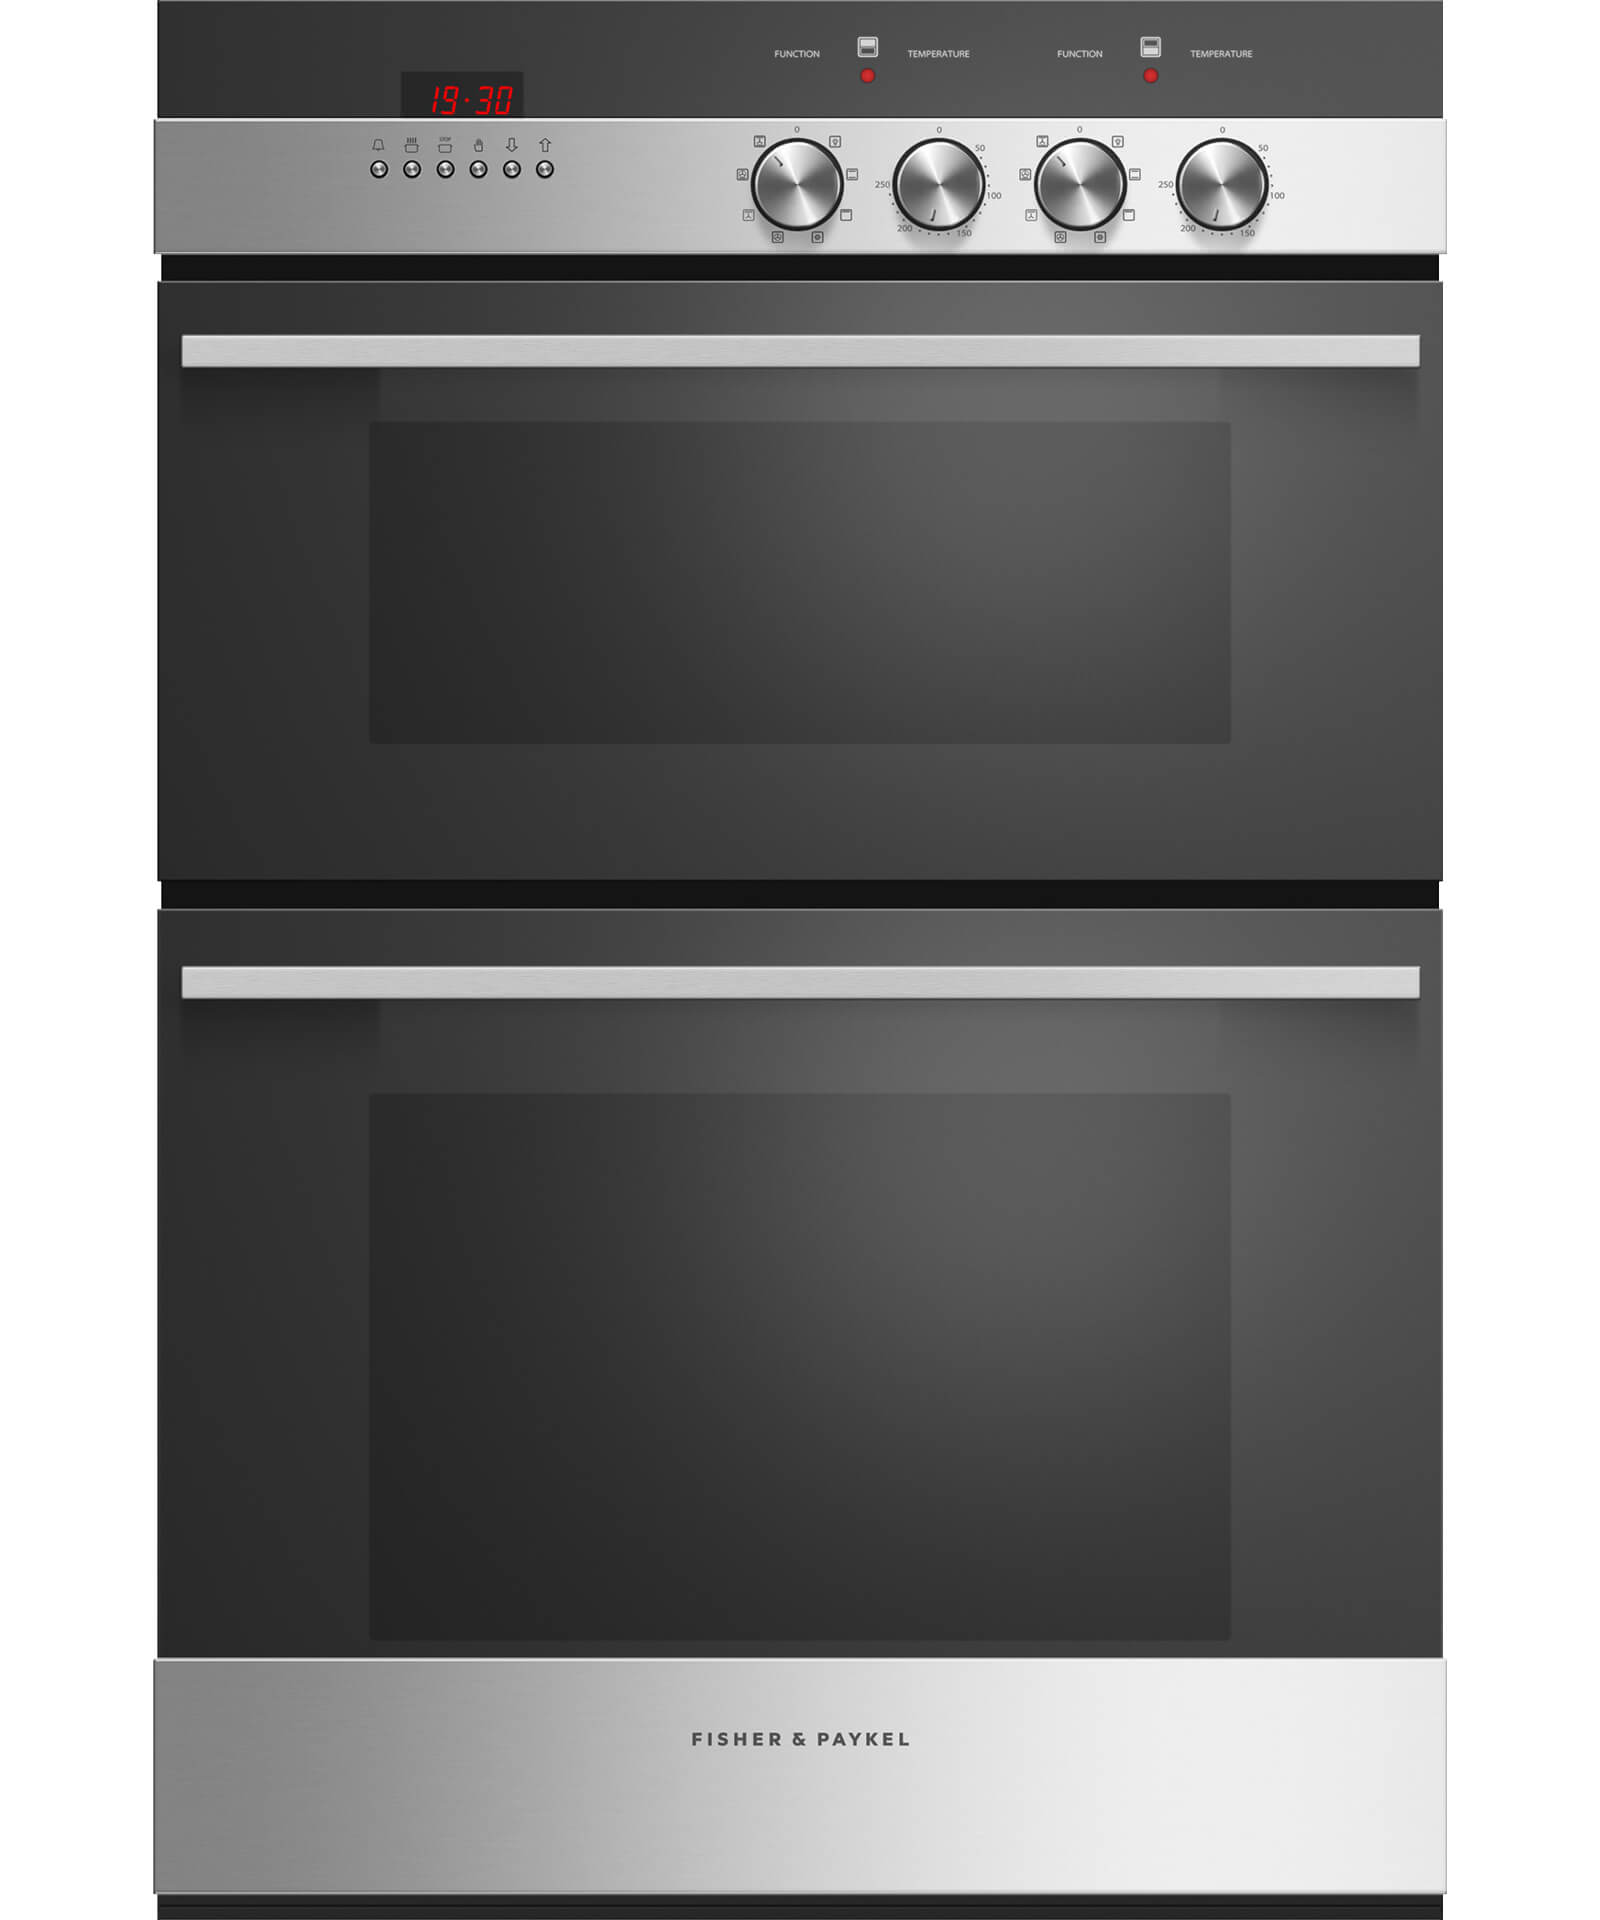 OB60B77DEX3 - 60cm 7 Function Double Built-in Oven - 45L + 71L Gross Capacity - 81475